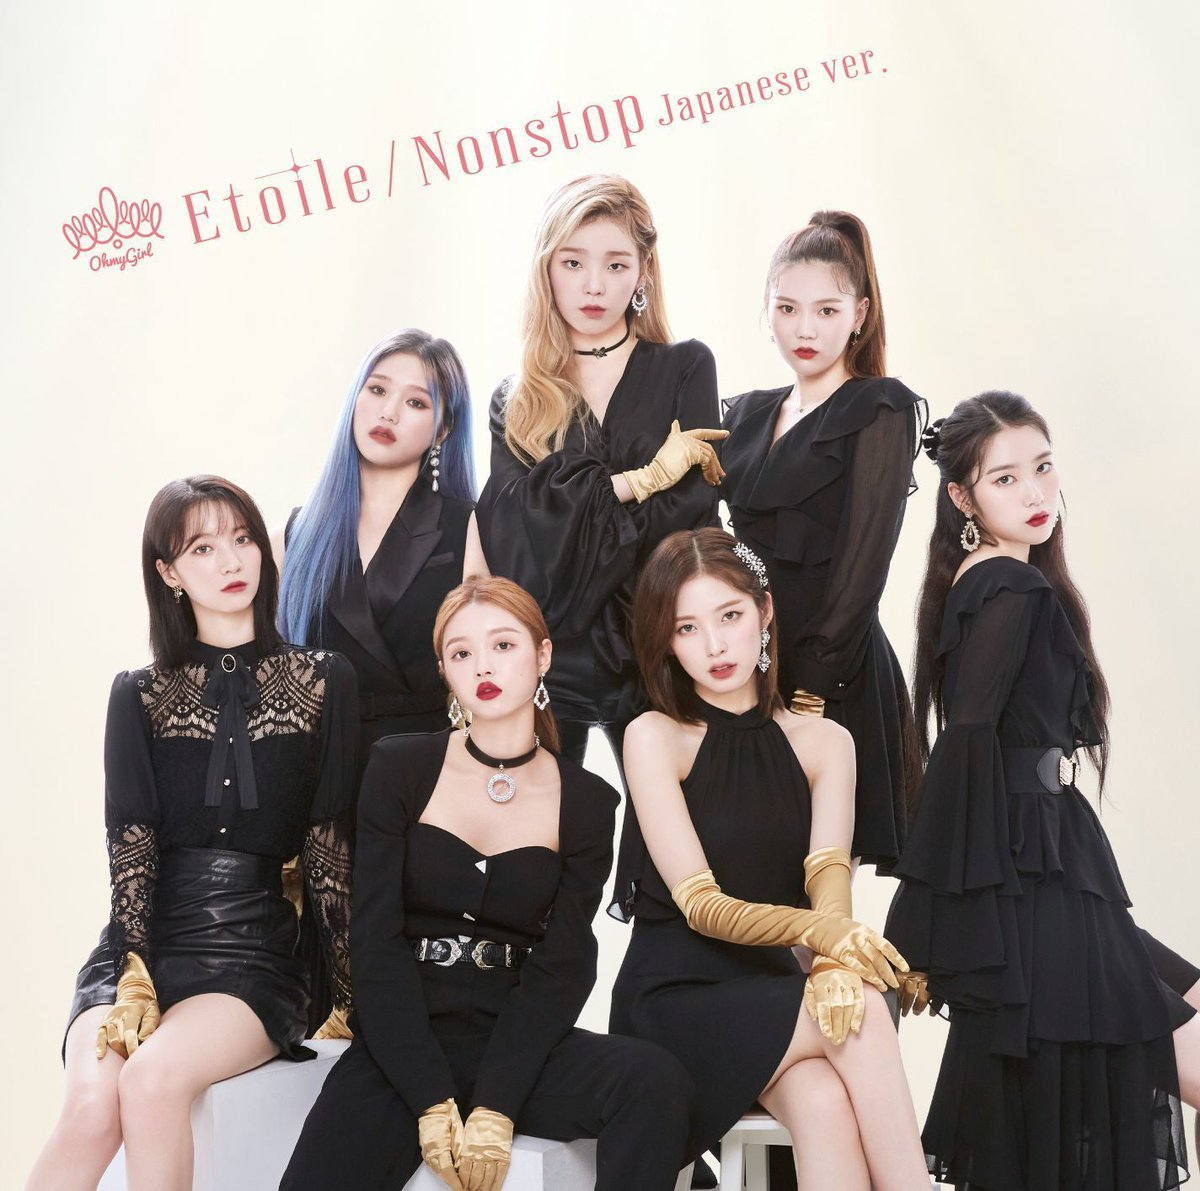 Thread By Miraclesunion Choeaedol Voting Tutorial For Aaa 2020 Asia Artist Awards Wm Ohmygirl 8 Ohmygirl Ohmygirl The Voting